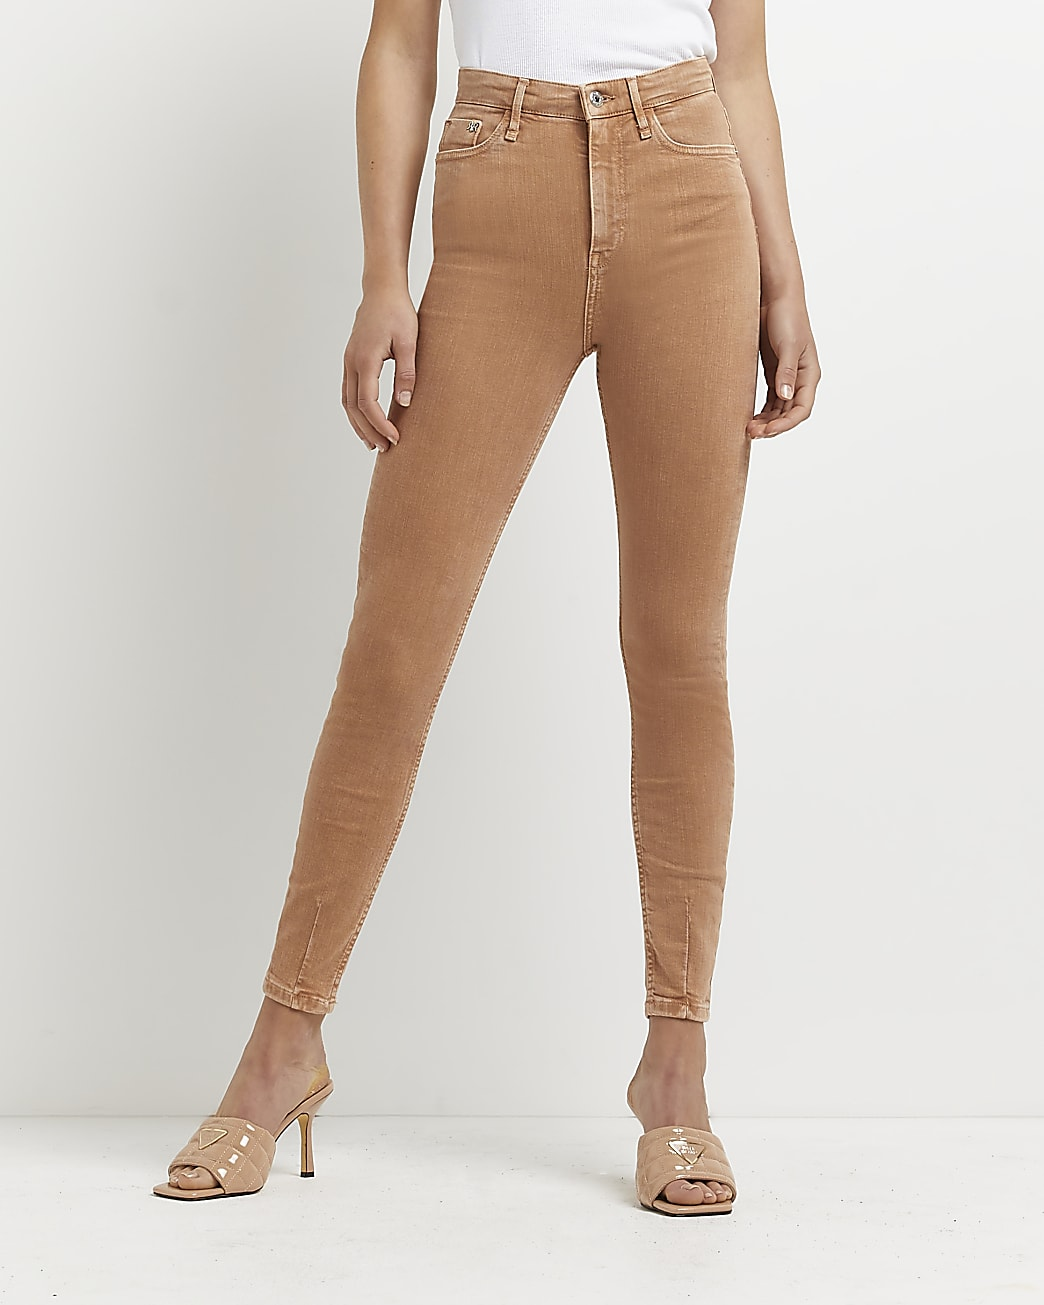 Brown high waisted skinny jeans